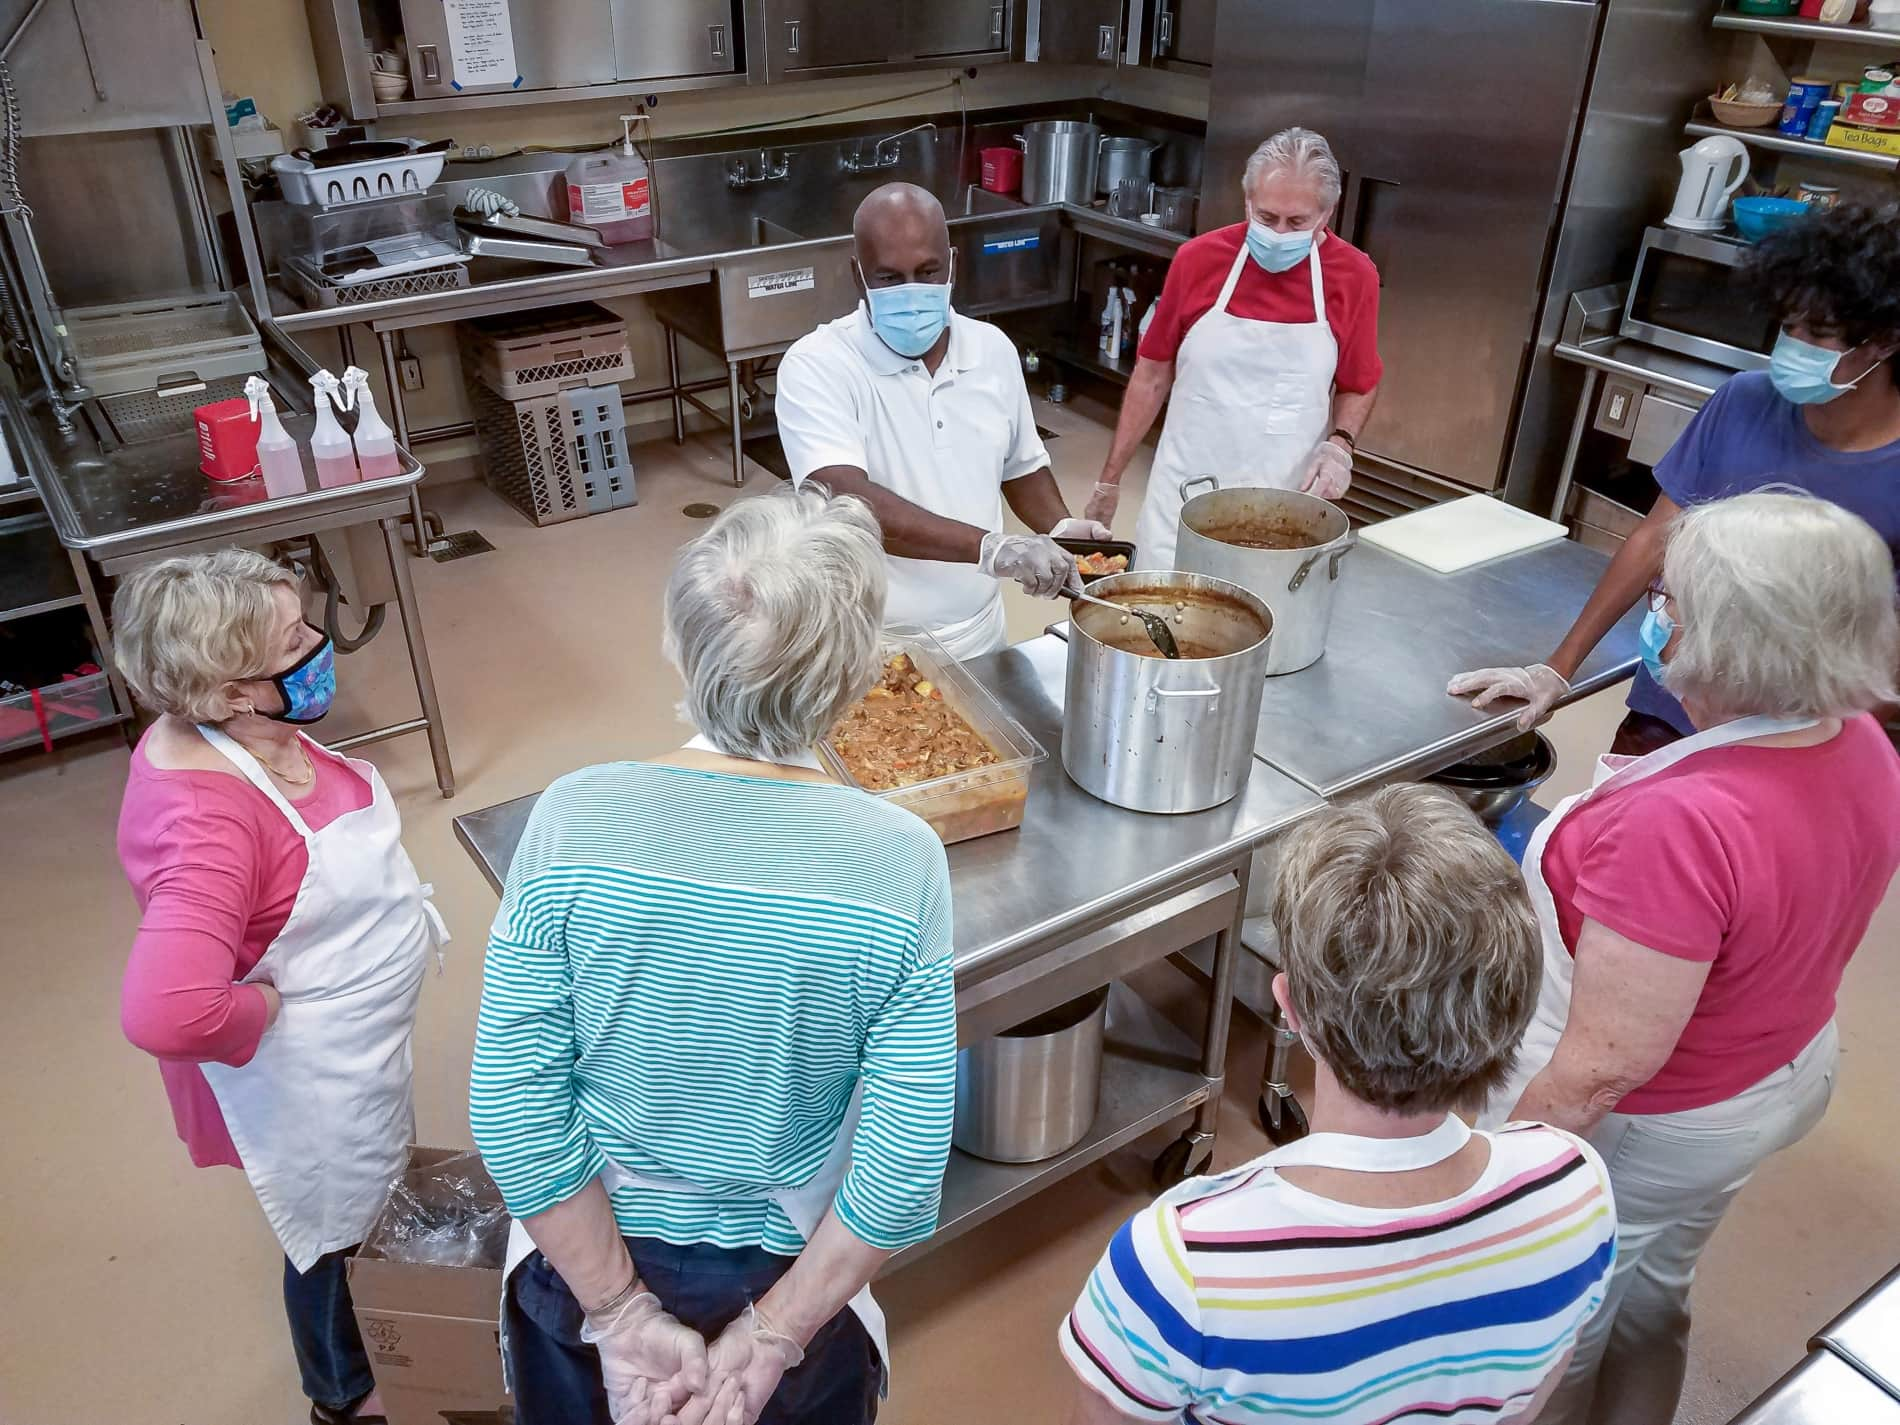 Volunteer gives cooking instruction to other volunteers